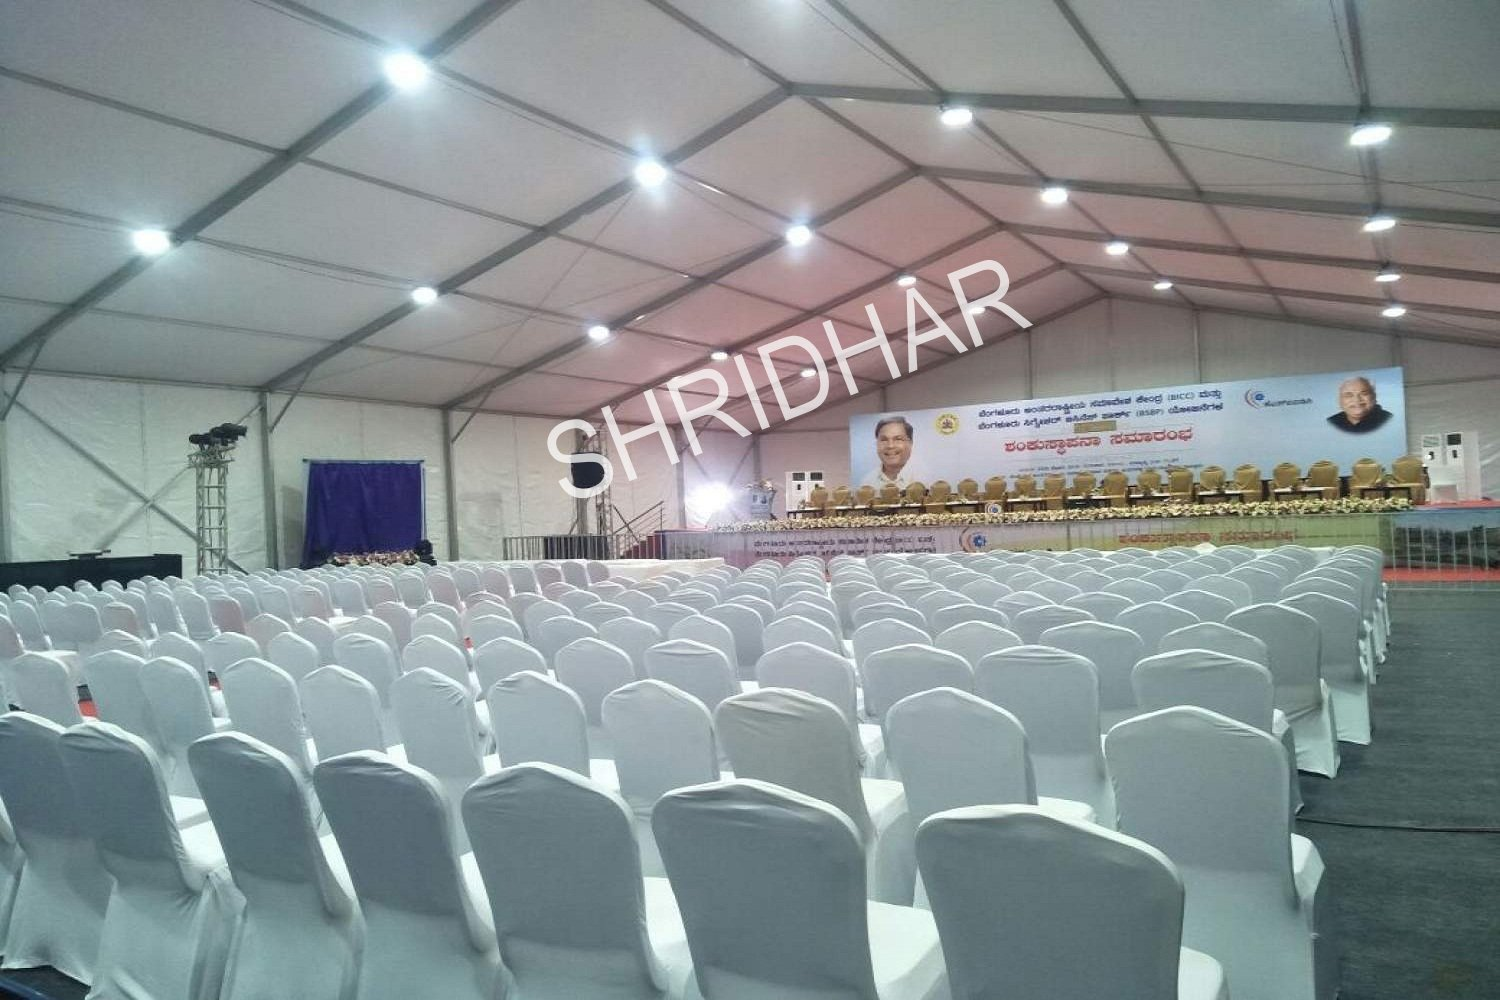 tents chairs wooden stages and lighting for rent for conferences in bangalore shridhar tent house